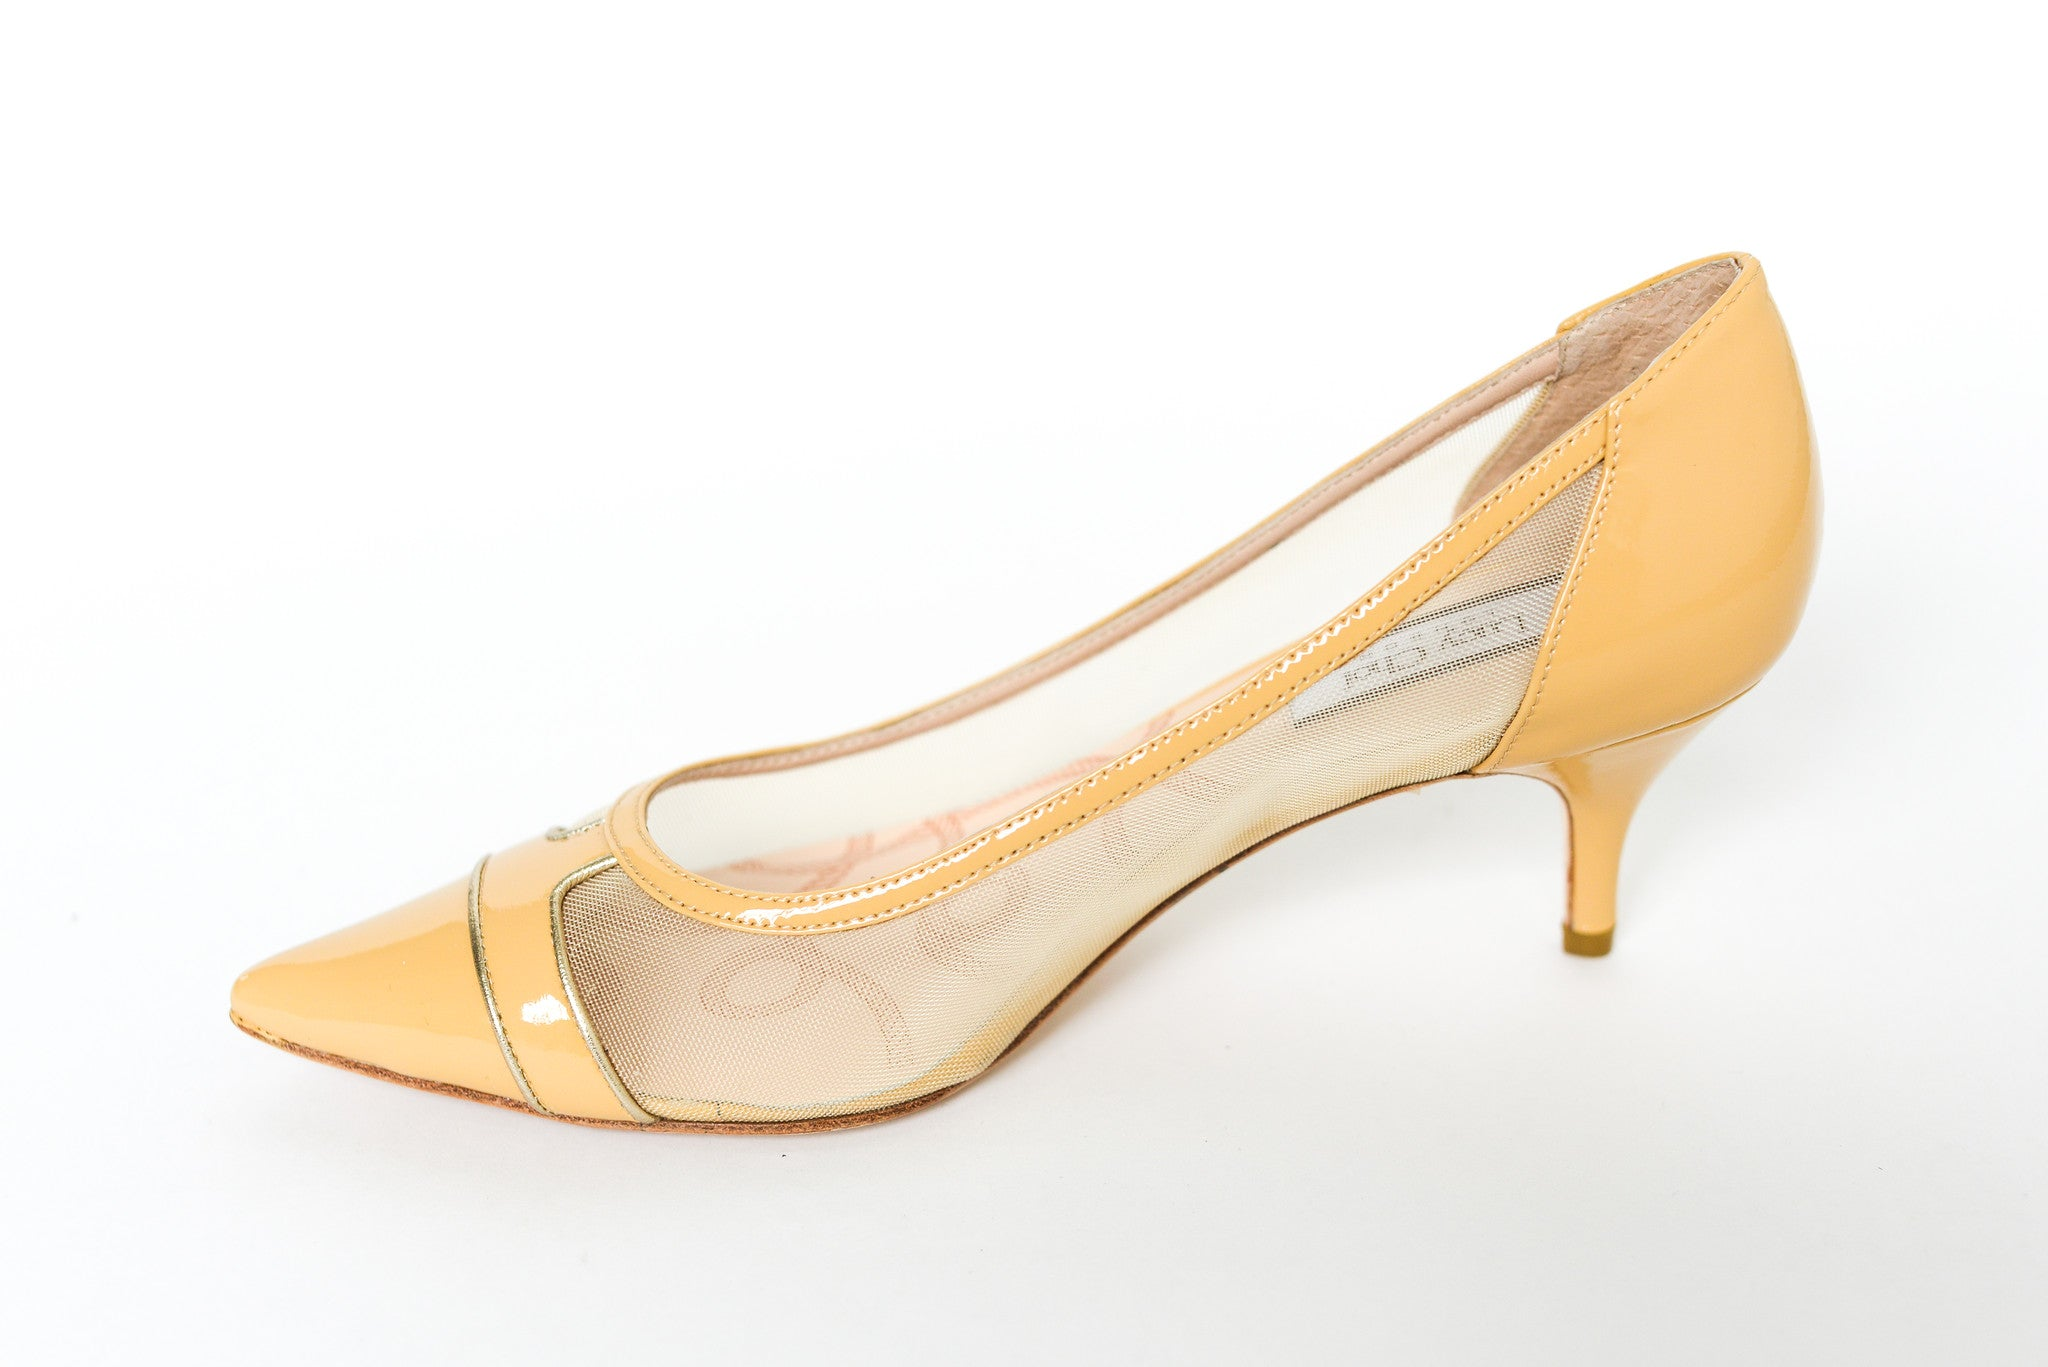 Lucy Choi London Lily Nude Mesh Patent Pump